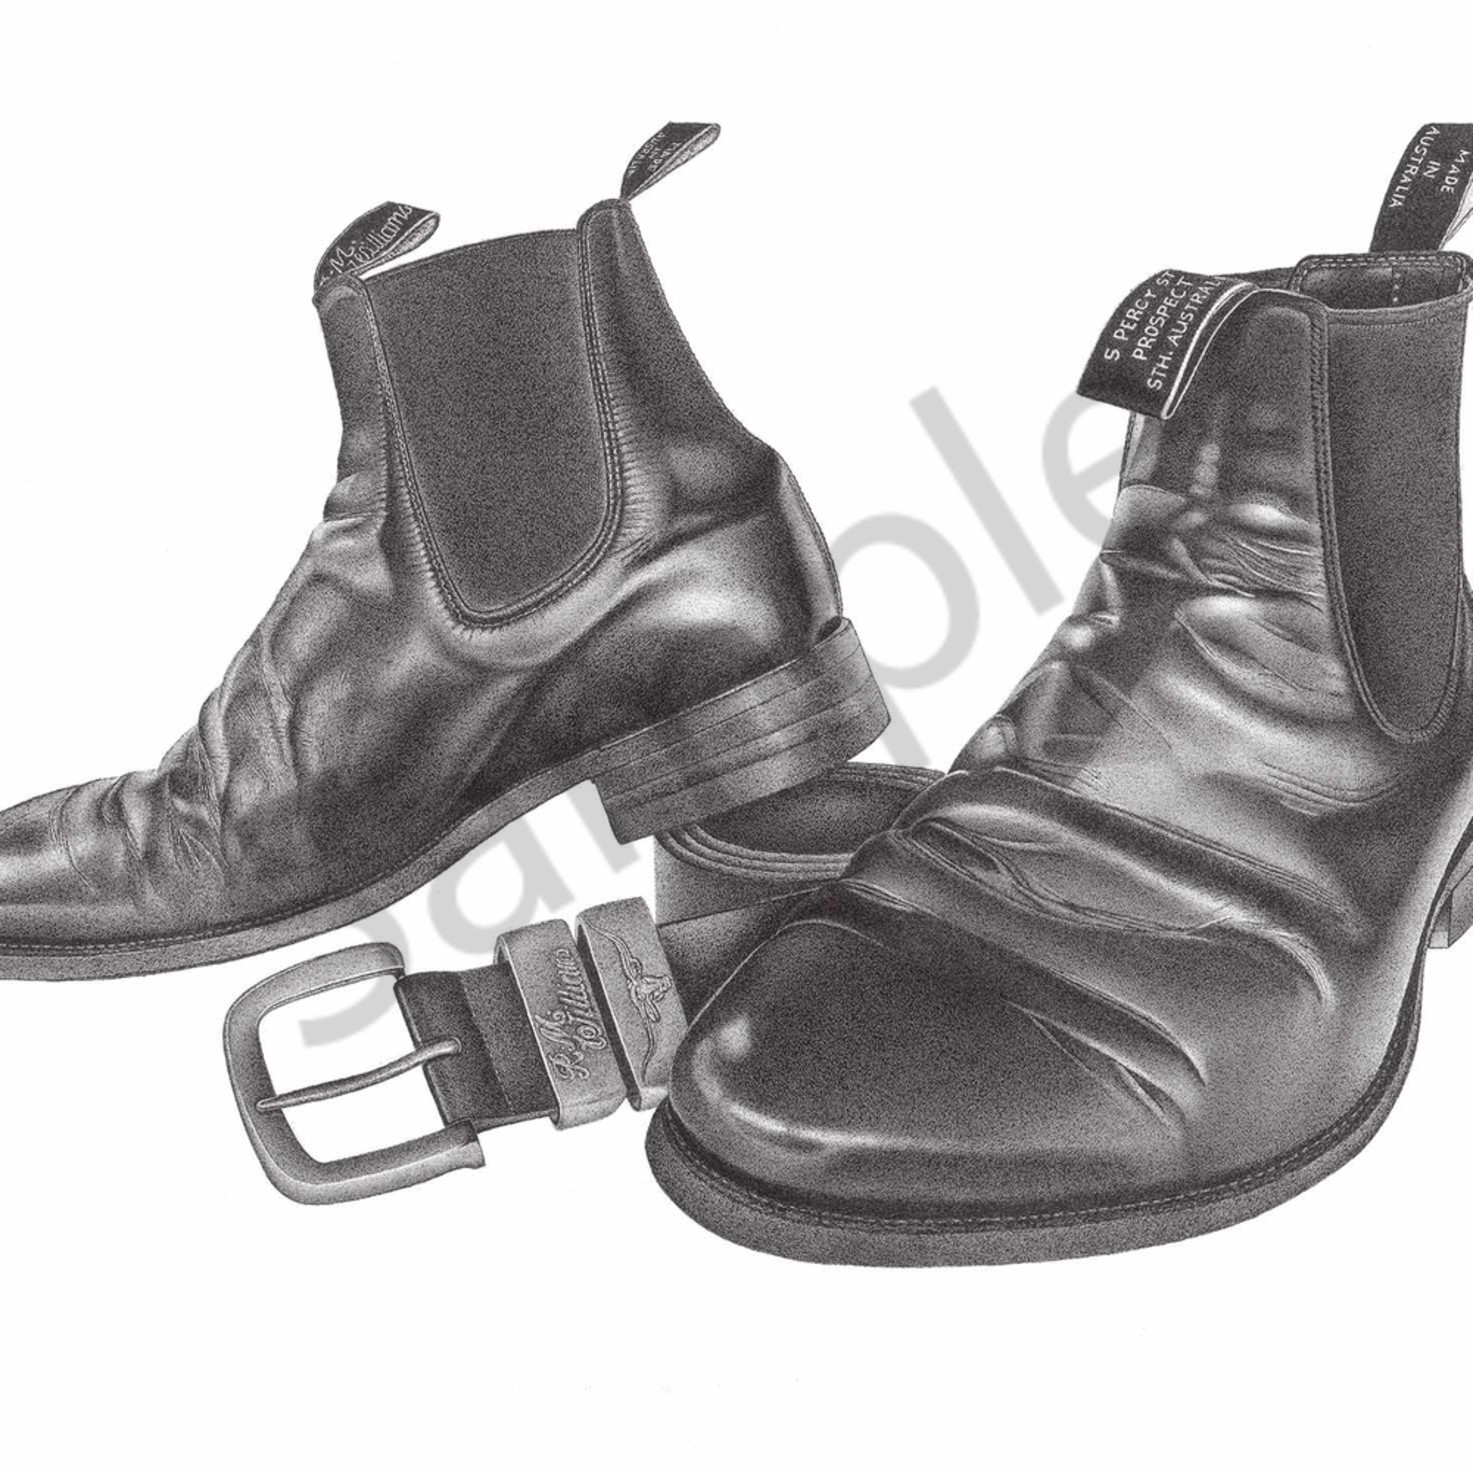 Peter price 001 my boots 2000px r97axi